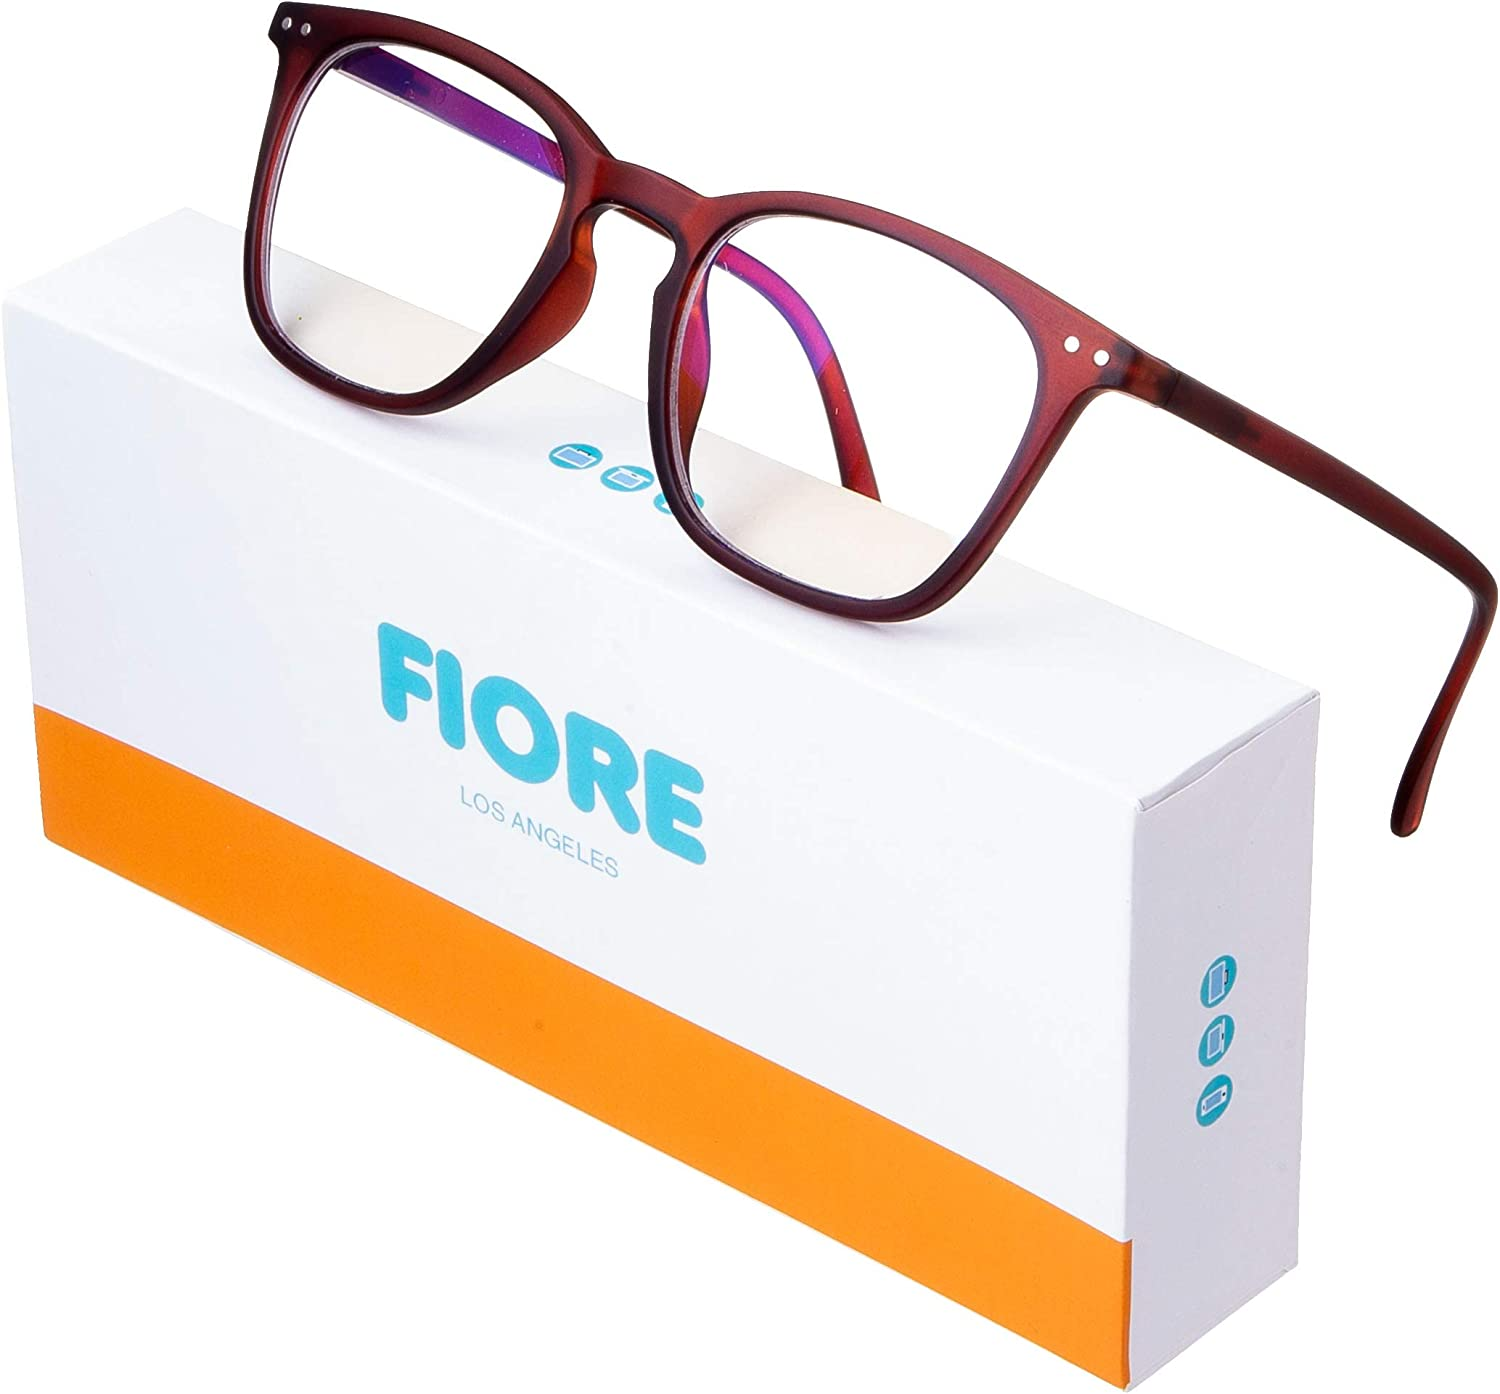 Blue Light Blocking free Glasses for Reading Men and Women Gami Super sale period limited